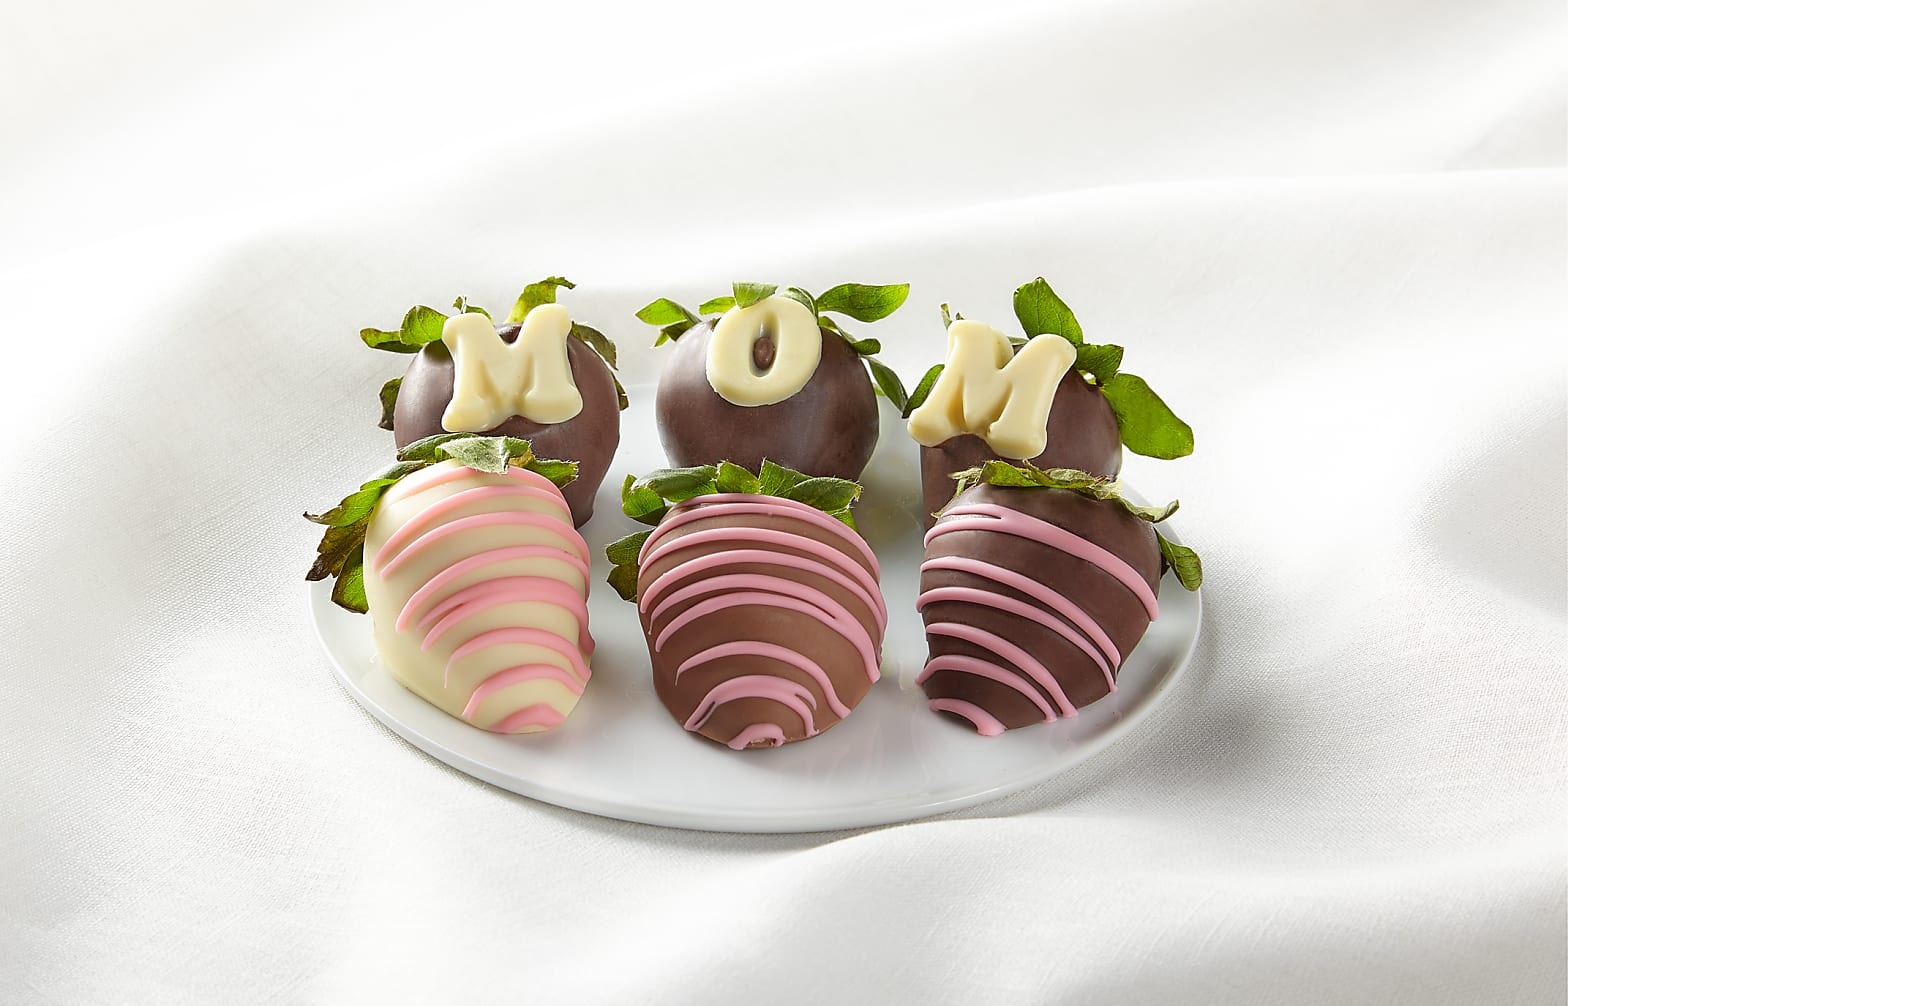 Mother's Day Chocolate Covered Strawberries - Image 1 Of 2